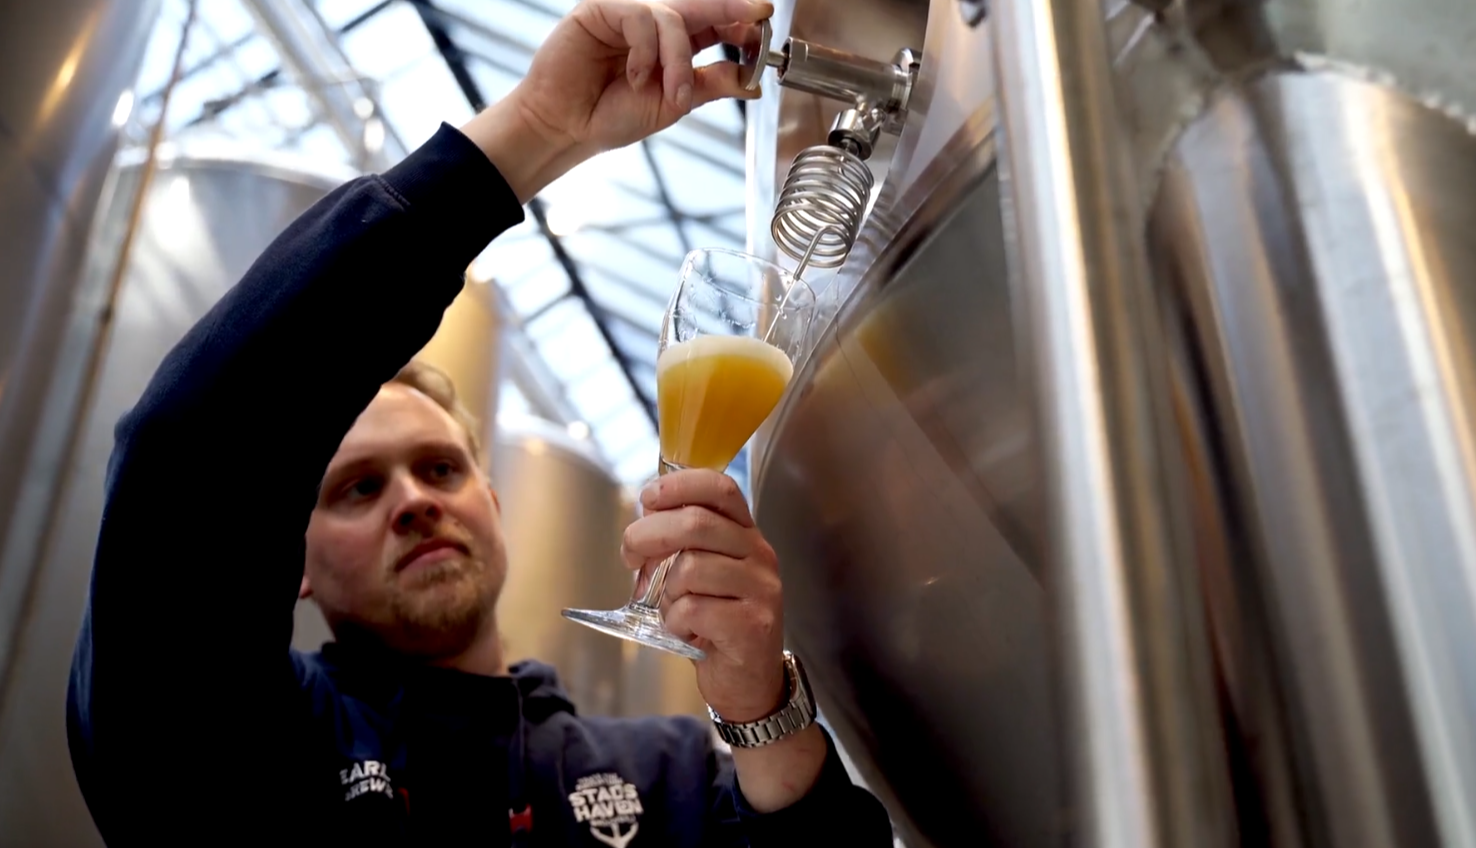 Stadshaven Brouwerij with a brewer filling a glass of beer